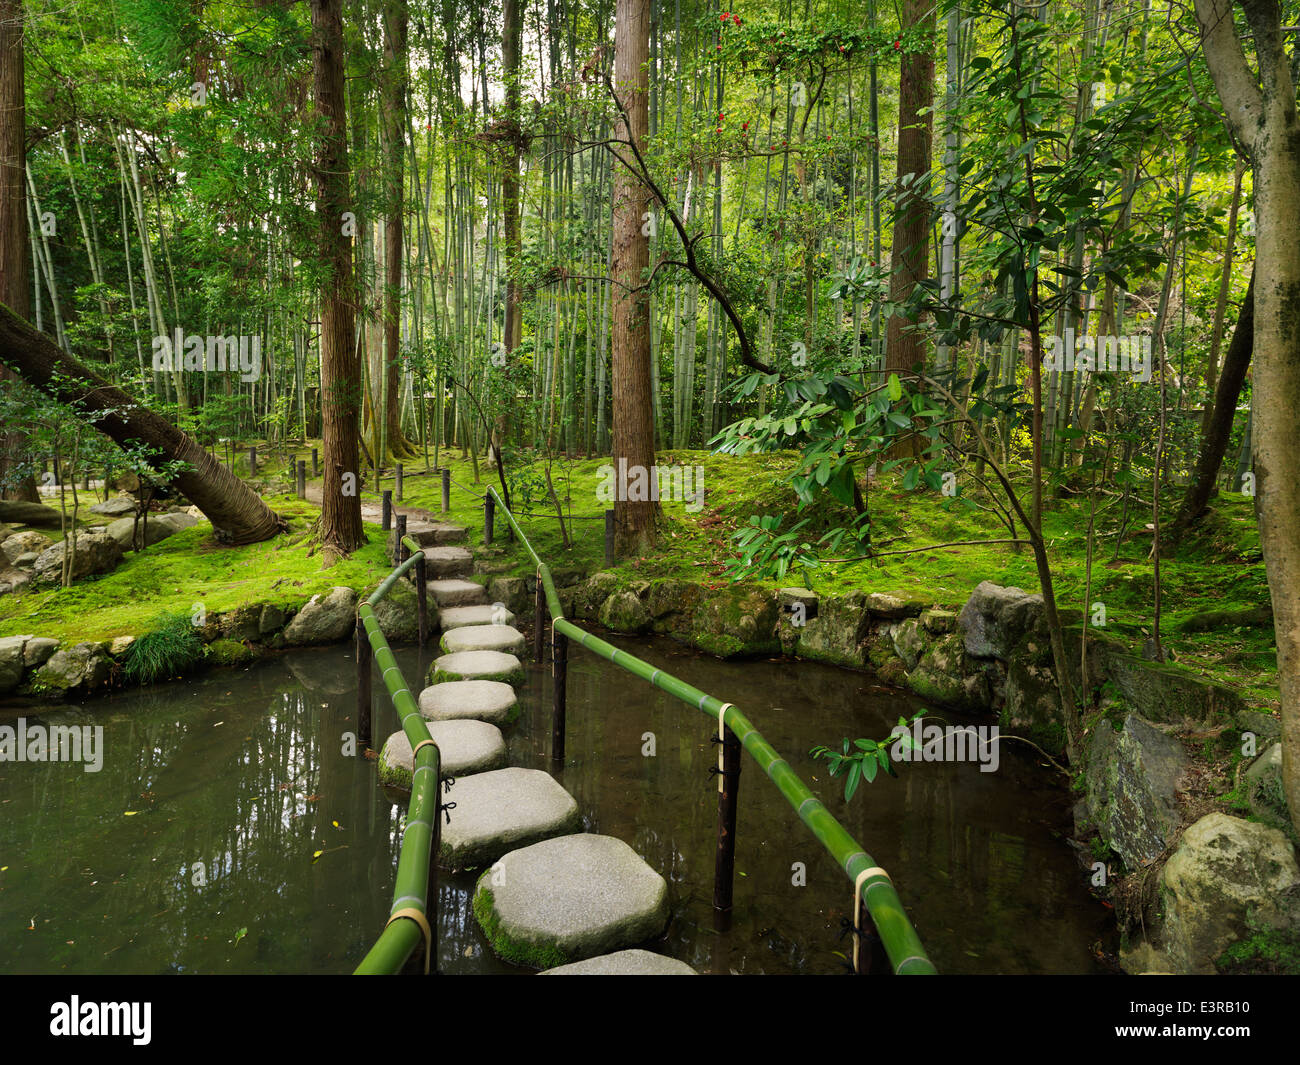 Japanese Zen garden with stepping stones over a pond. Kyoto, Japan. - Stock Image